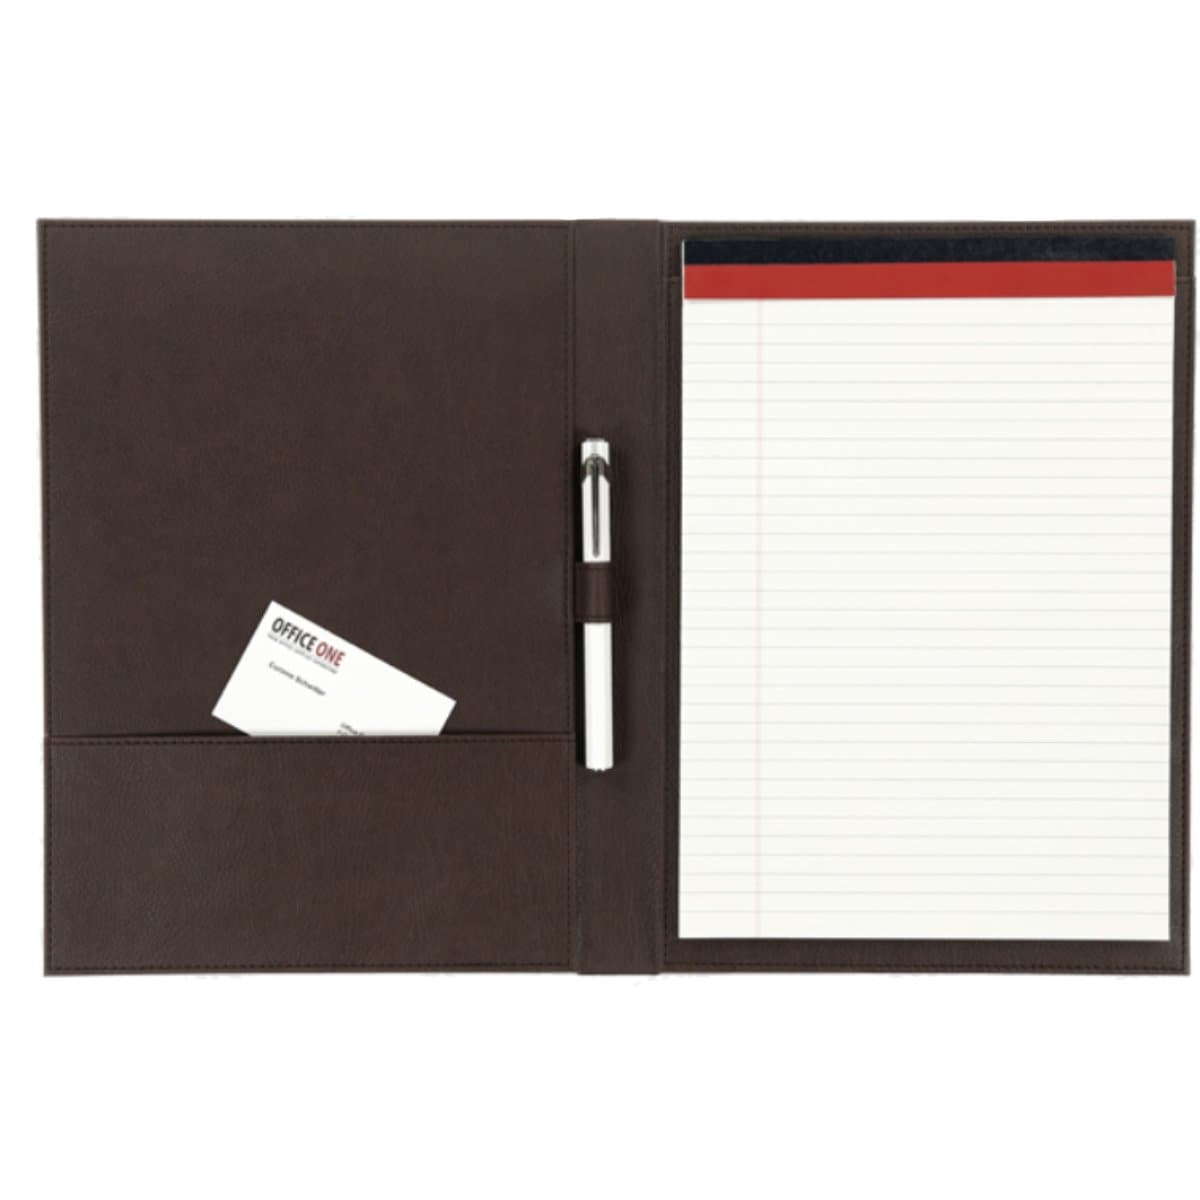 Konrad S. Conference Folder for A4 Notepad, PU Leather, Brown